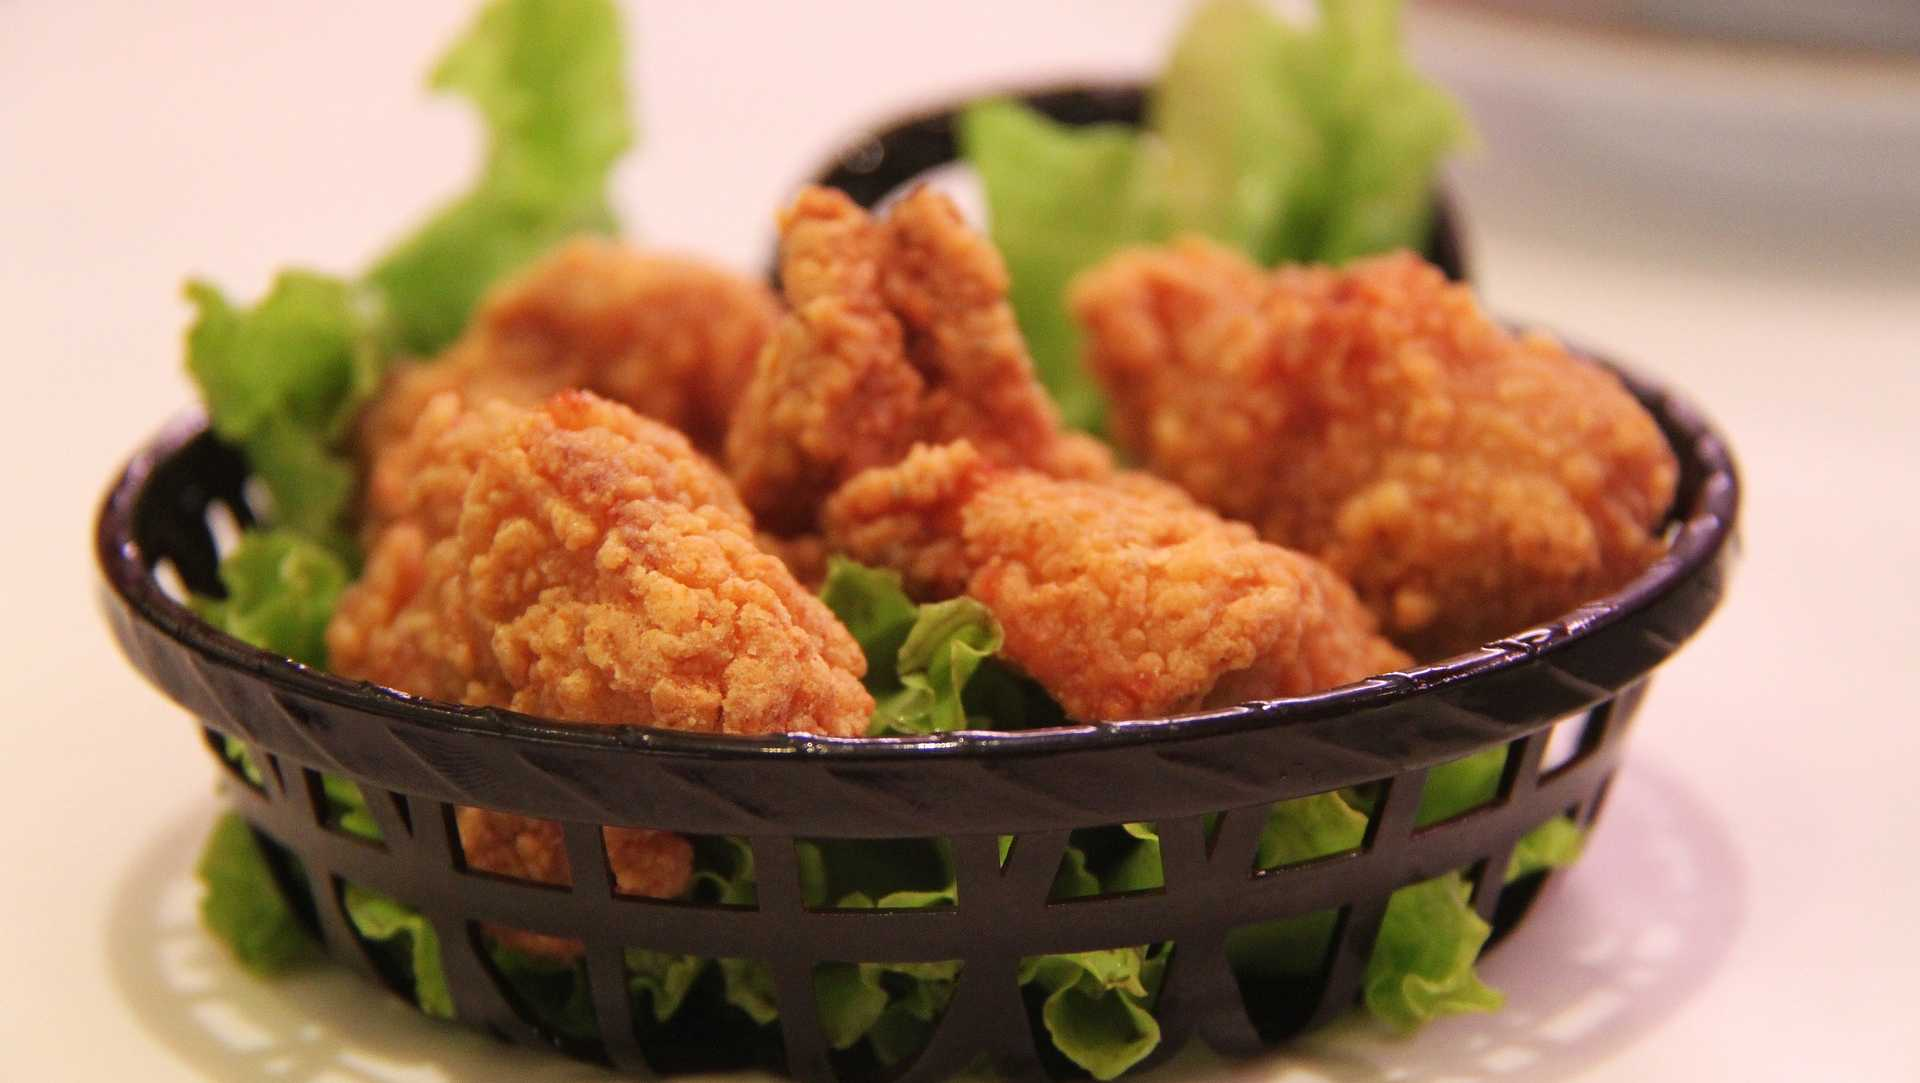 File image of fried chicken